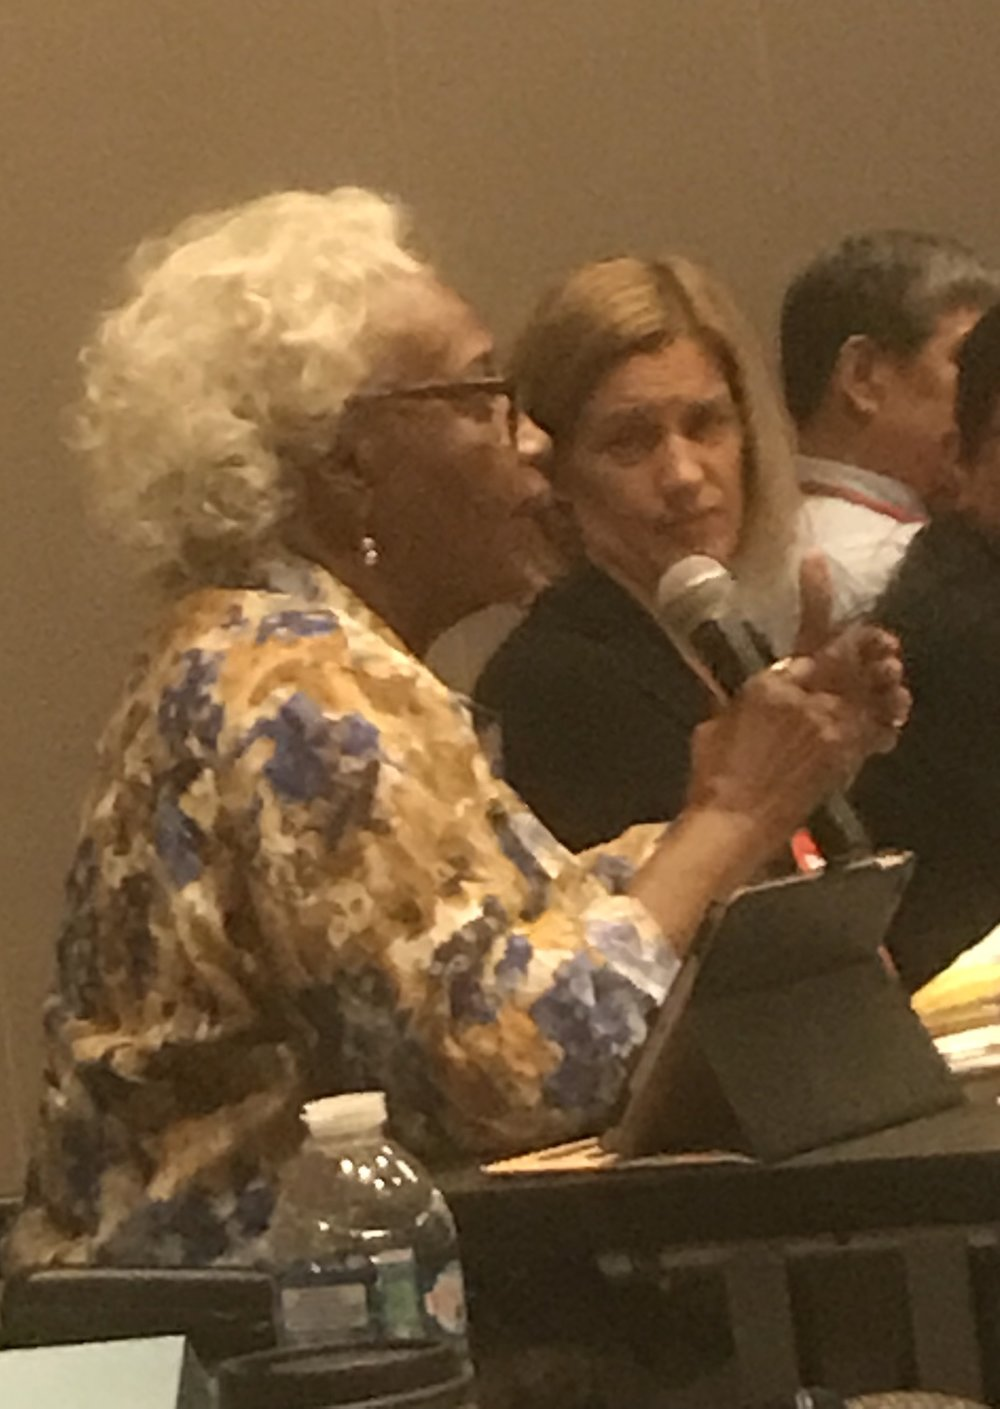 Committee Member Dr. Anita George asks a question about the development of Racial Justice programs in various contexts with and without external funding.